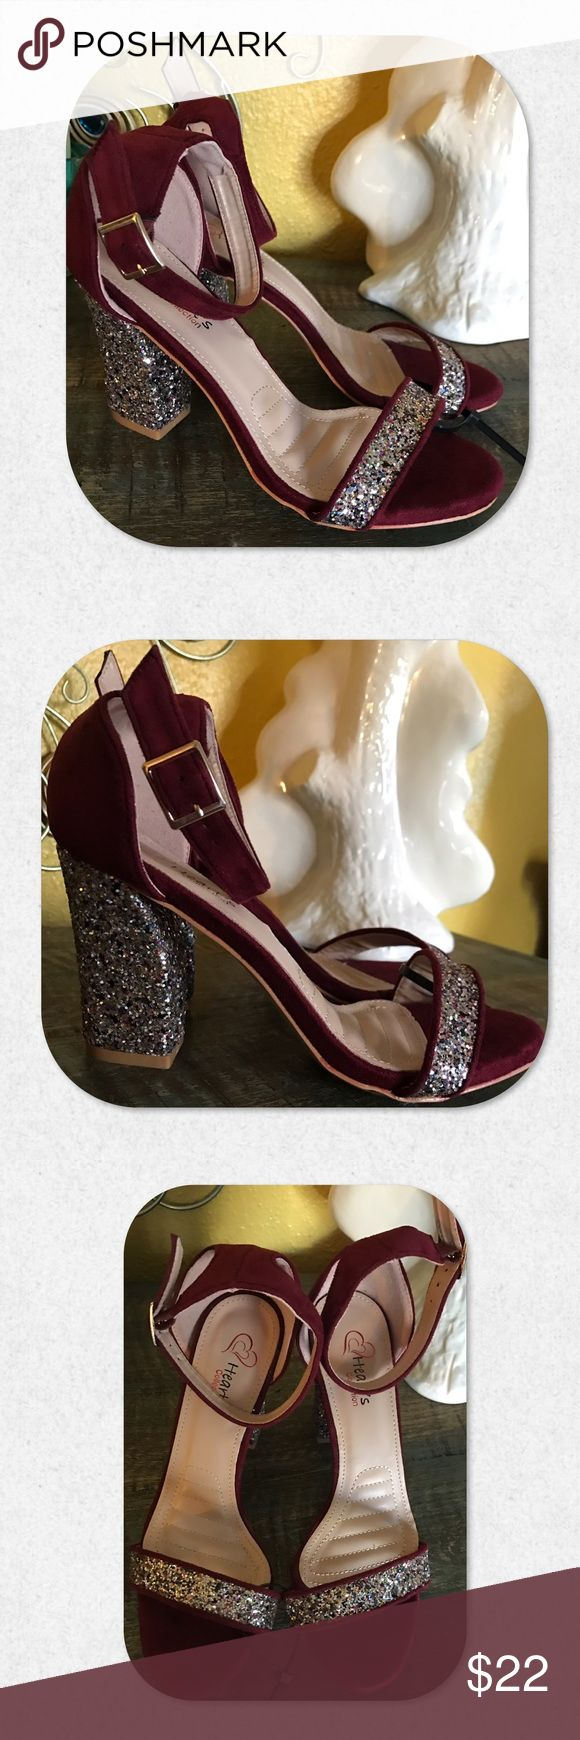 "Hearts Condition Party Ankle Strap Blingy Sandals NWT. These blingy heels would be PERFECT for a party or night on the town!!! 4"" chunky heel gives a lot of stability for your dance moves! 😉 Ankle strap makes these sandals very sexy. Be sparkly in the night lights with the heels and strap across the top! Beautiful burgundy color. Size 6 1/2. Heart's Condition Shoes Sandals"